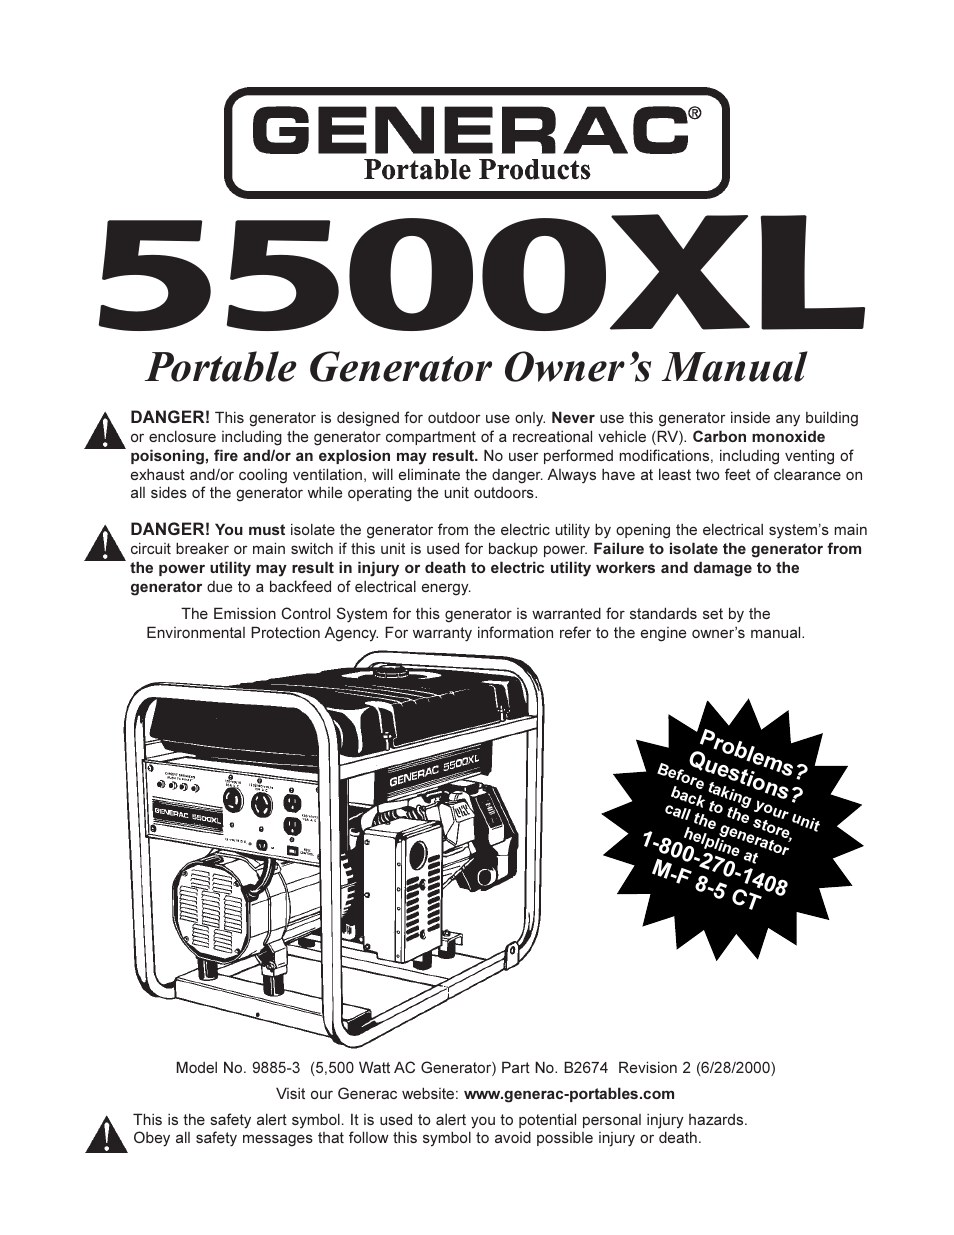 Scintillating Generac Portable Generator Parts Diagram Gallery ...